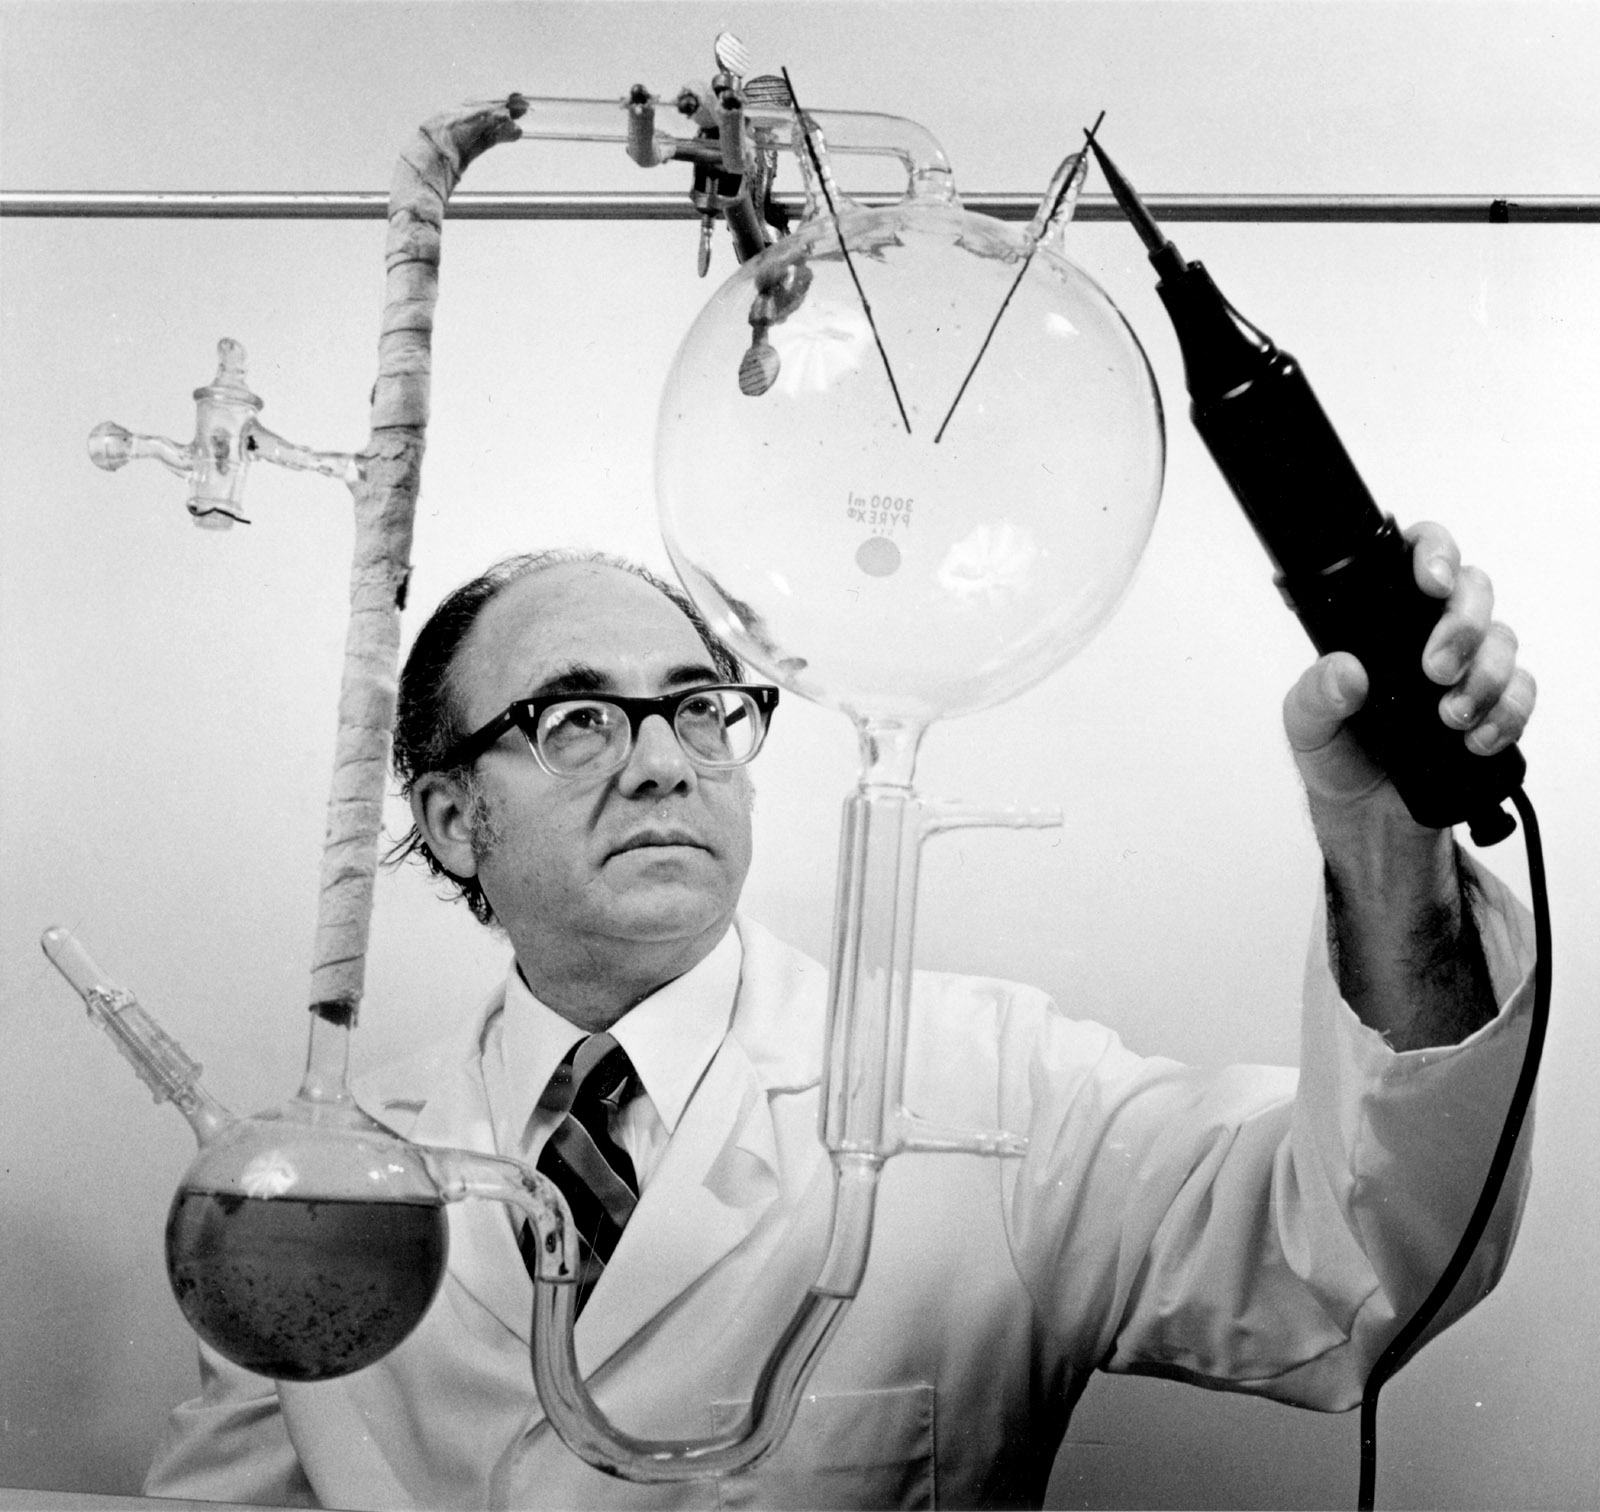 Stanley Miller conducting the Miller-Urey Experiment, designed to test the idea that the fundamental elements of life could be assembled in a 'primordial soup'